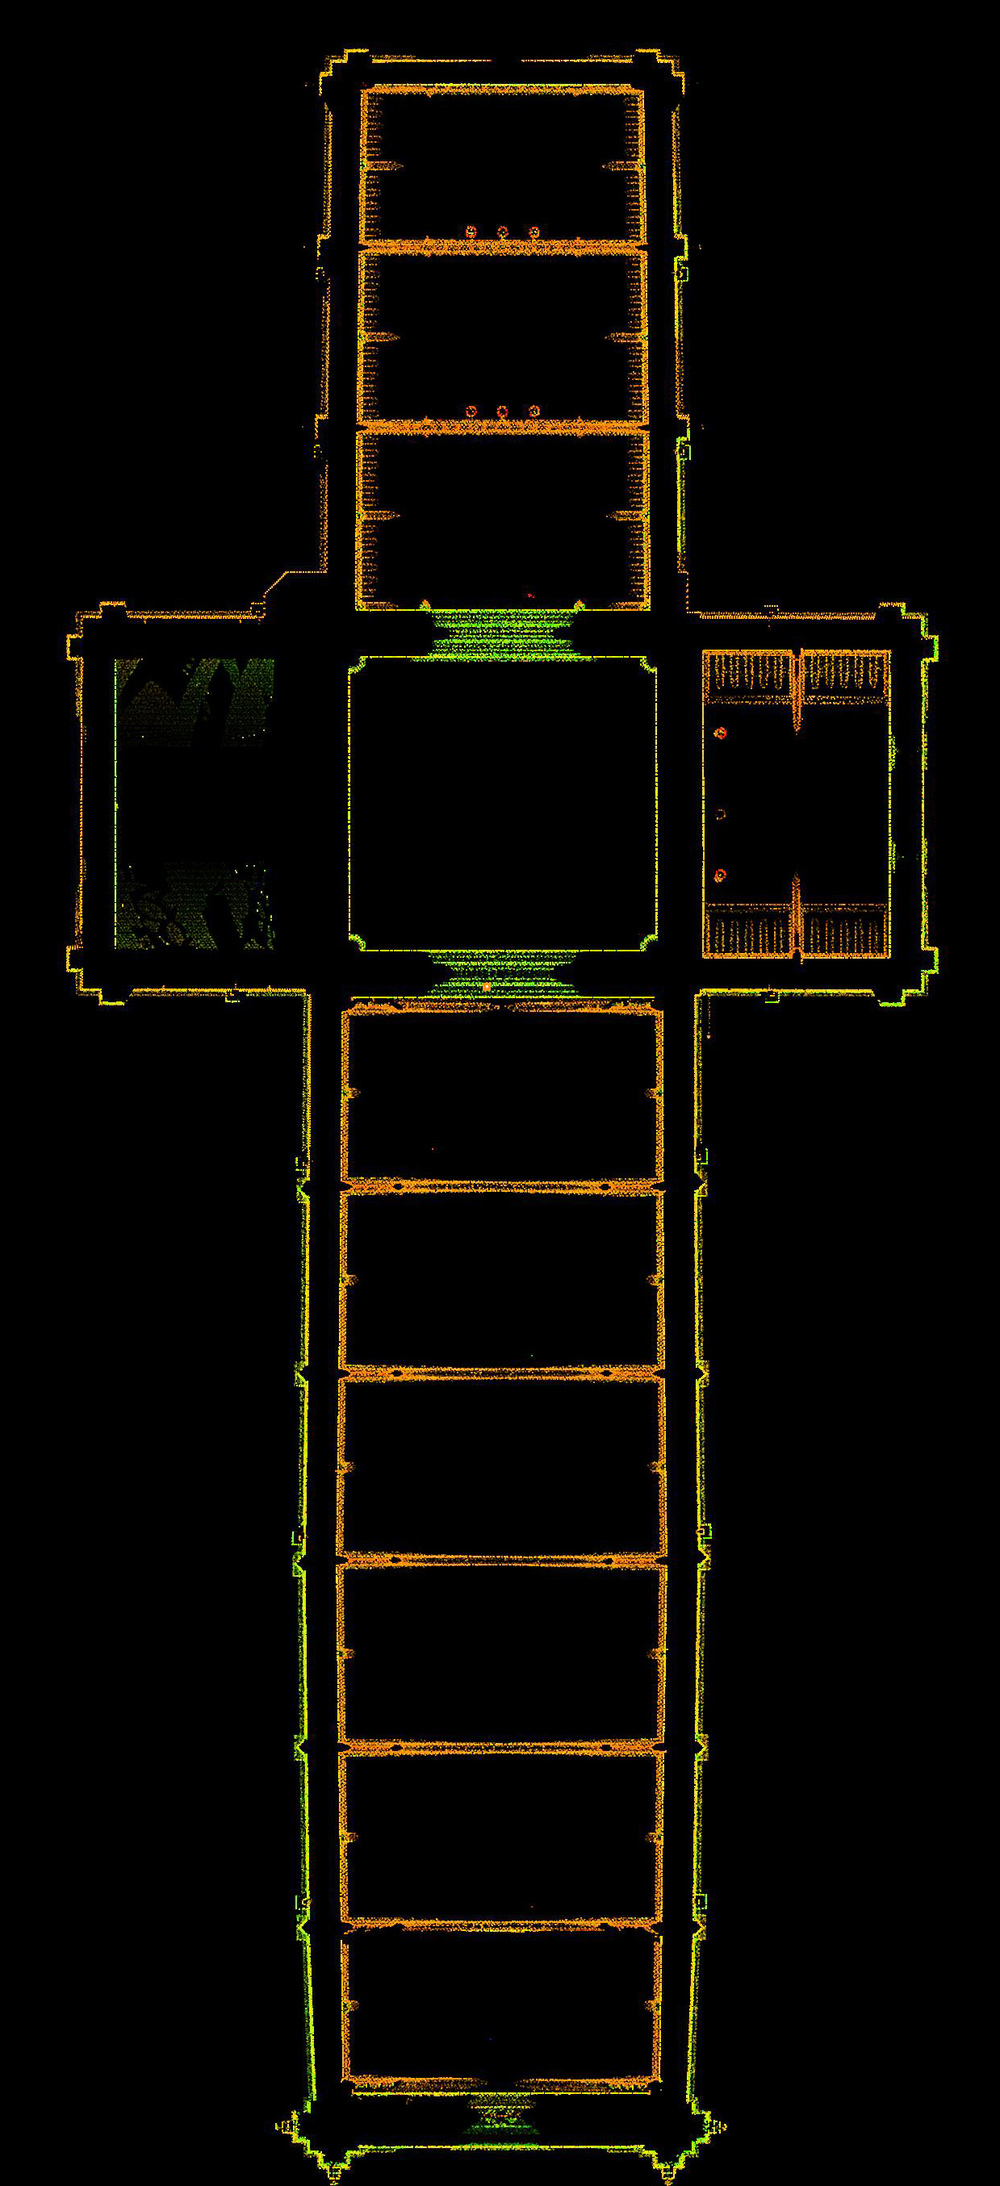 Figure 7: Bryn Athyn, Cathedral of the New Jerusalem, laser scan: plan above the clerestory windows.